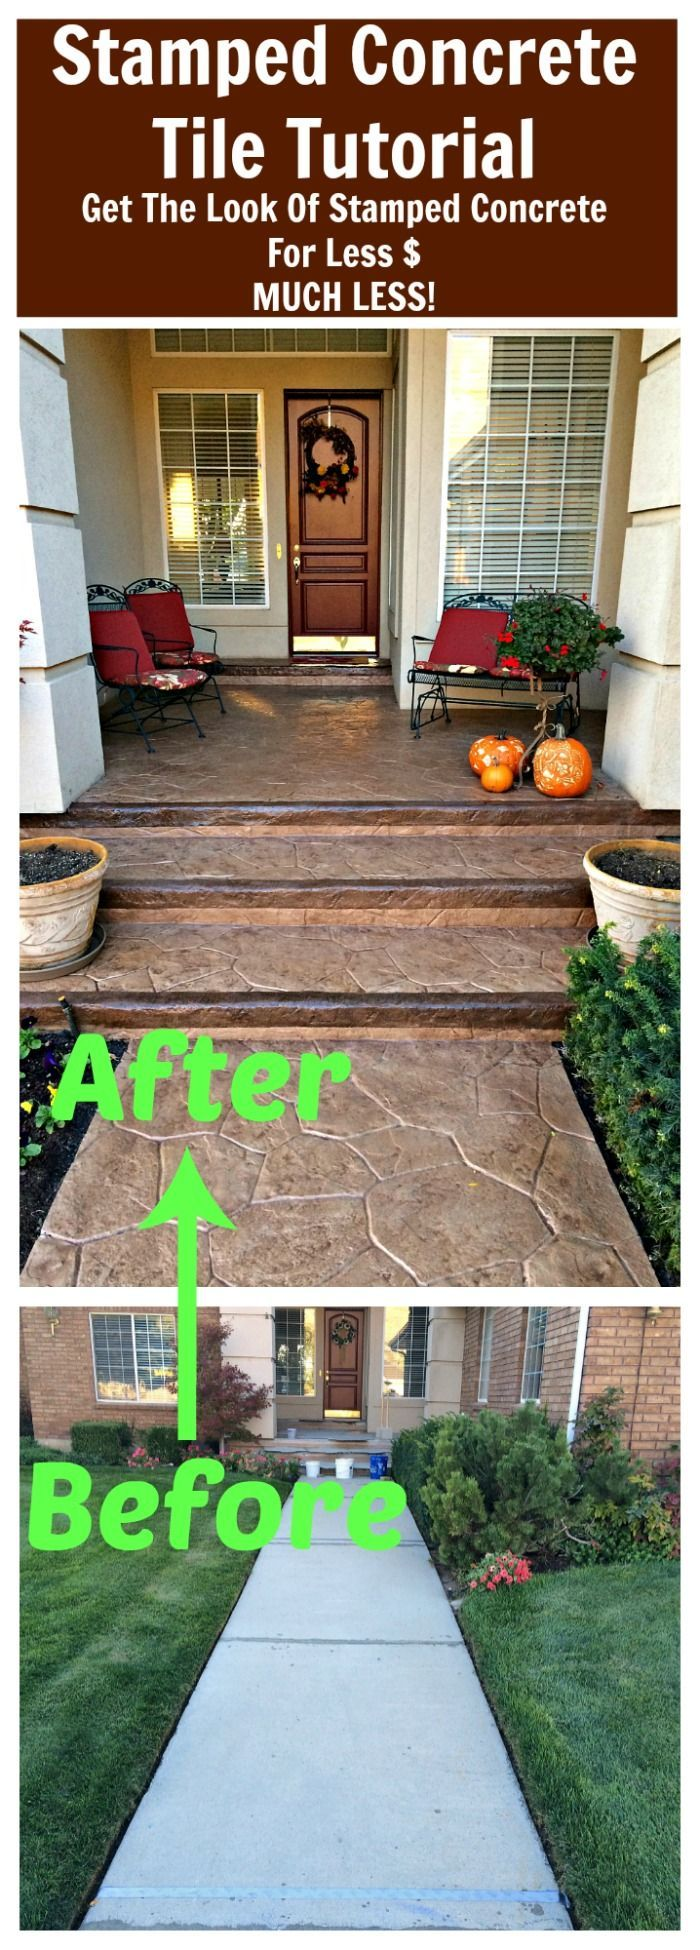 DIY STAMPED CONCRETE TILE TUTORIAL | Concrete Tiles, Stamped Concrete And  Concrete